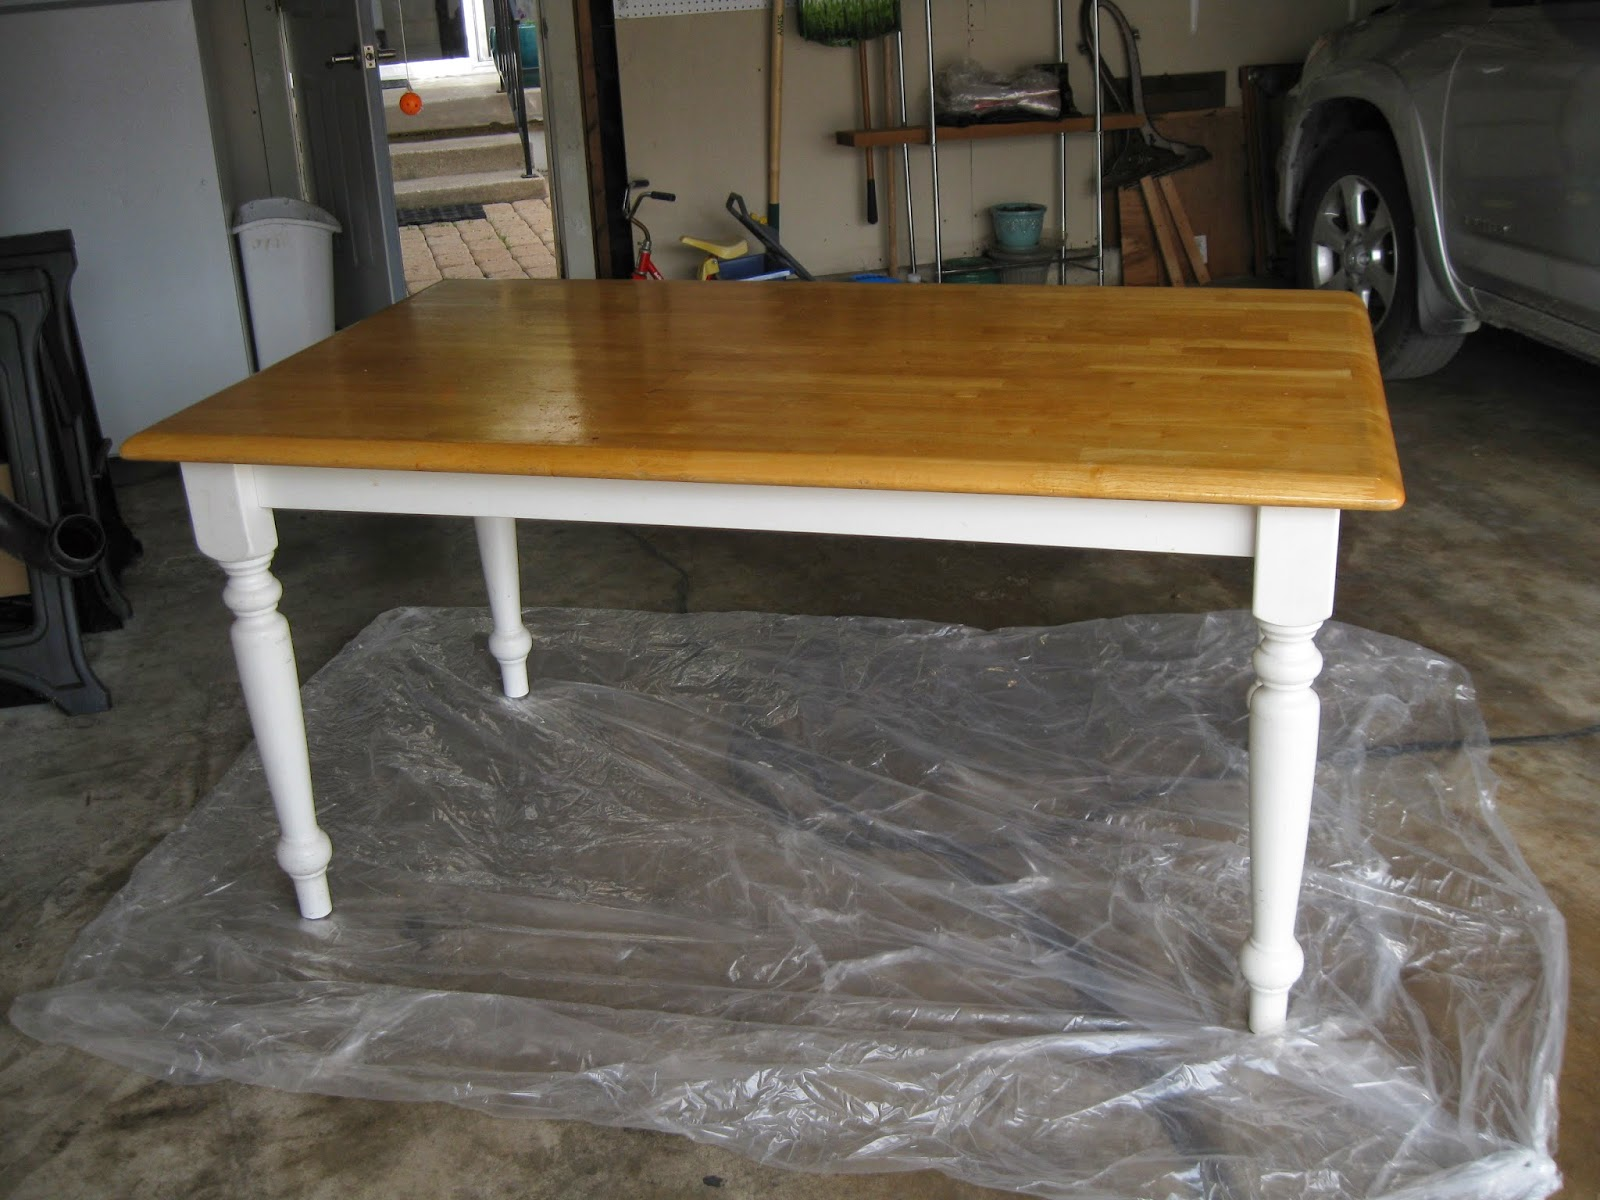 How To Turn An Ugly, Generic Kitchen Table Into A Farmhouse Table: Part 1